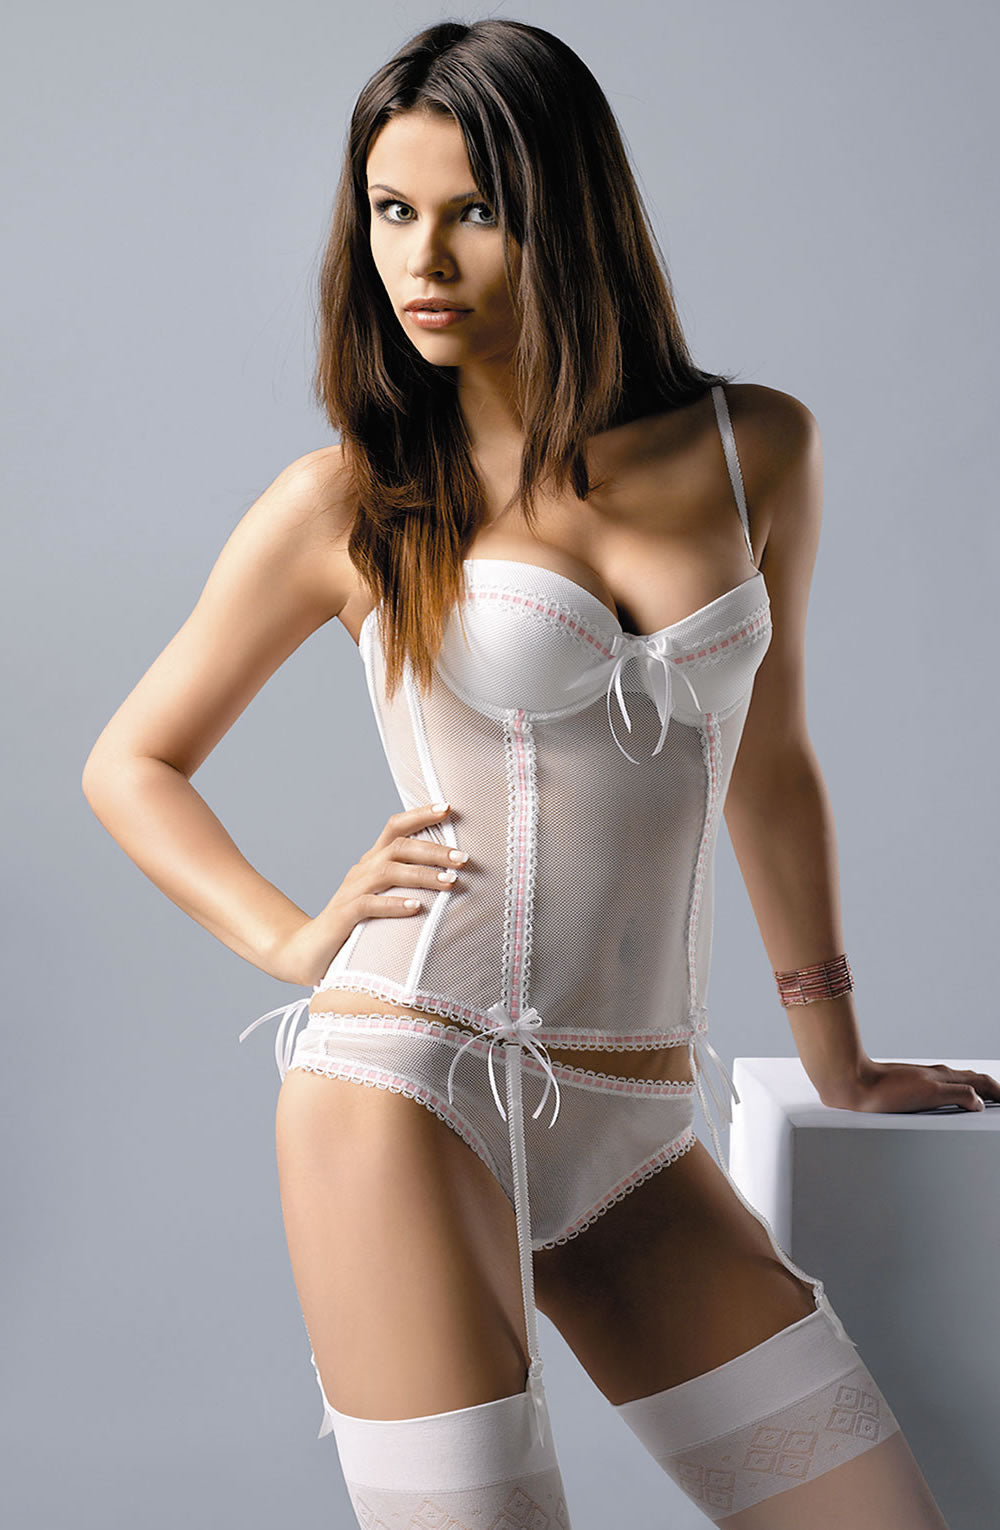 Gracya Paola Corset White/Pink  Corsets, Gracya, Honeymoon, Lingerie Sets, NEWLY-IMPORTED - So Luxe Lingerie